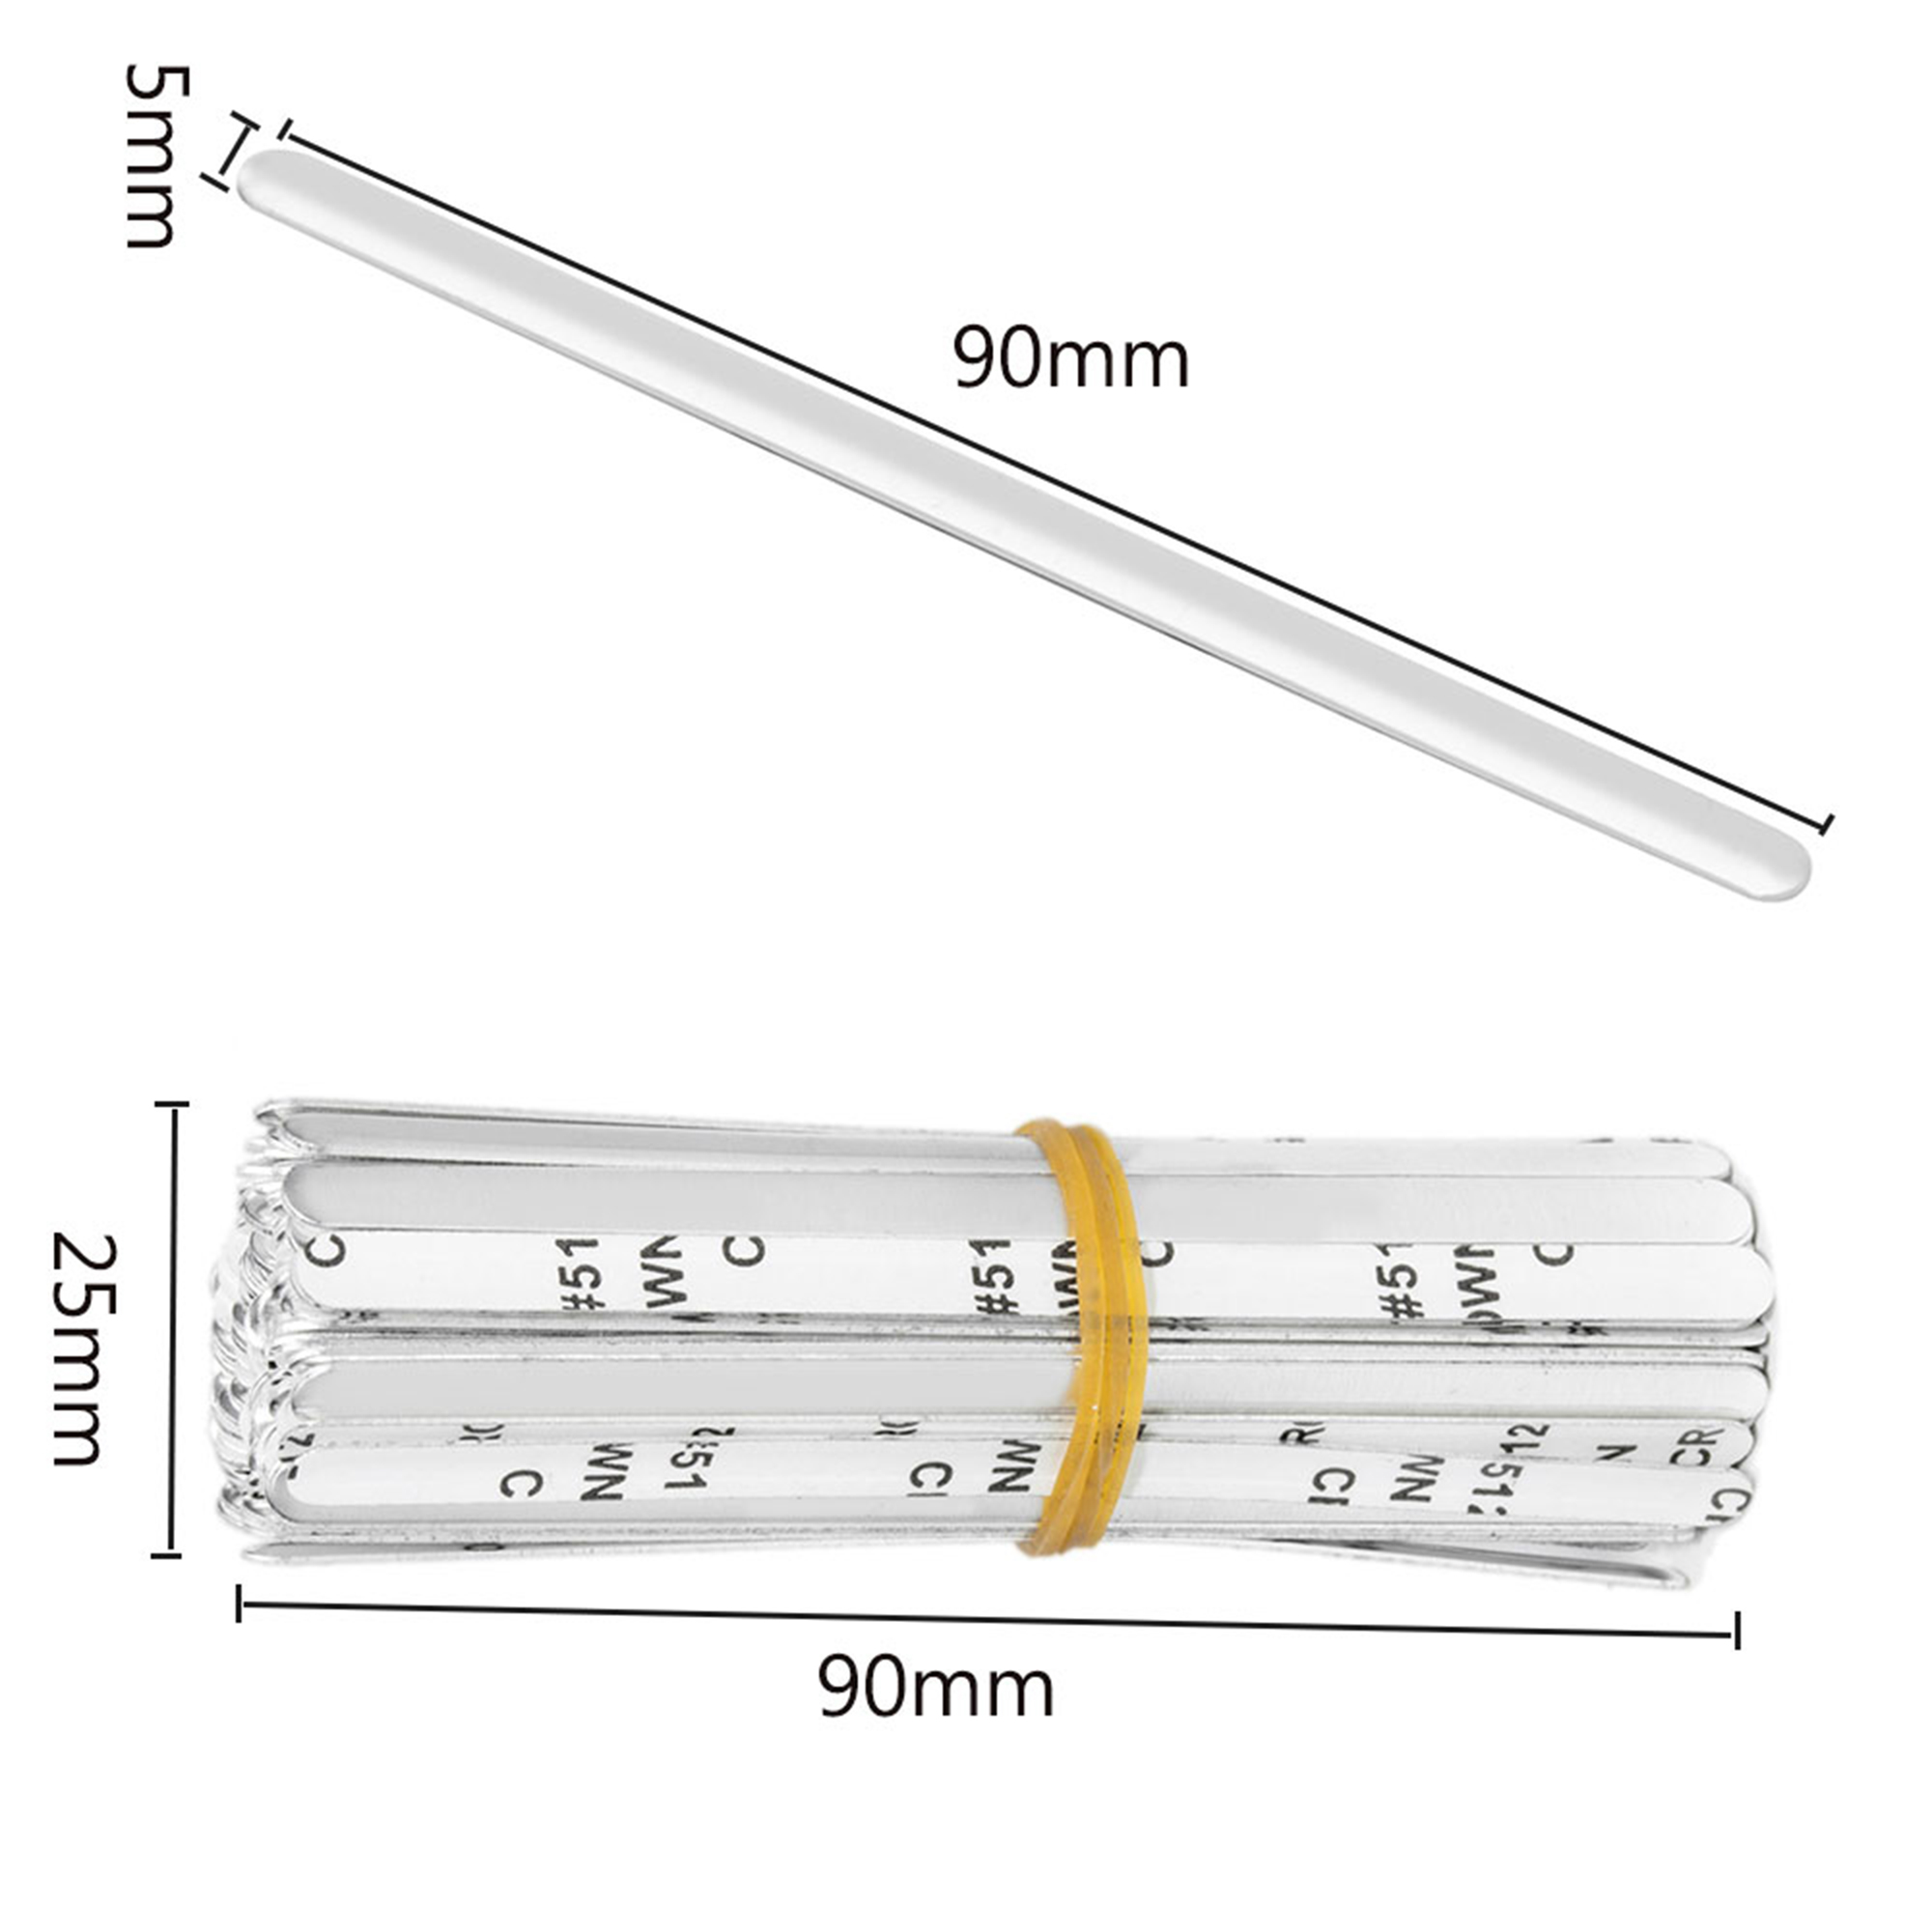 Adhesive Back Aluminum Strips Nose Wire Nose Bridge for 90MM Metal Flat Nose Clips Nose Bridge Bracket DIY Wire for Sewing Crafts 240PCS